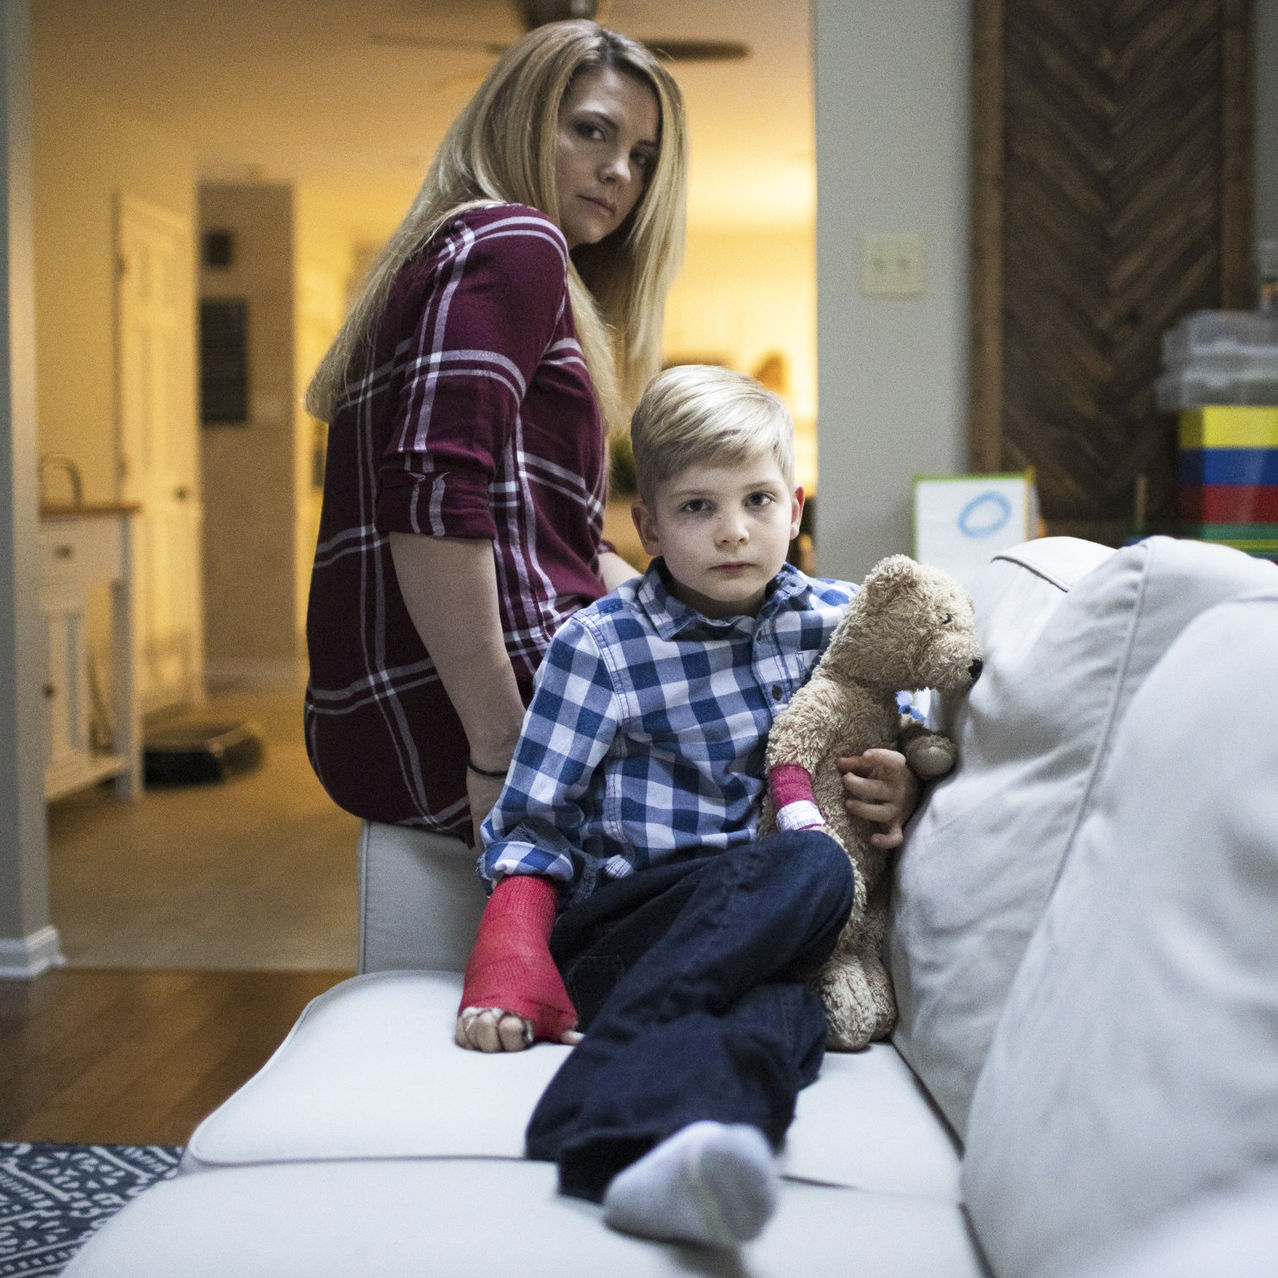 Christa Bottomley sits in her York, Pa., home with her 7-year-old son, Sebastian, who remains partially paralyzed after a common viral cold he had two years ago triggered a rare neurological condition called acute flaccid myelitis, or AFM.